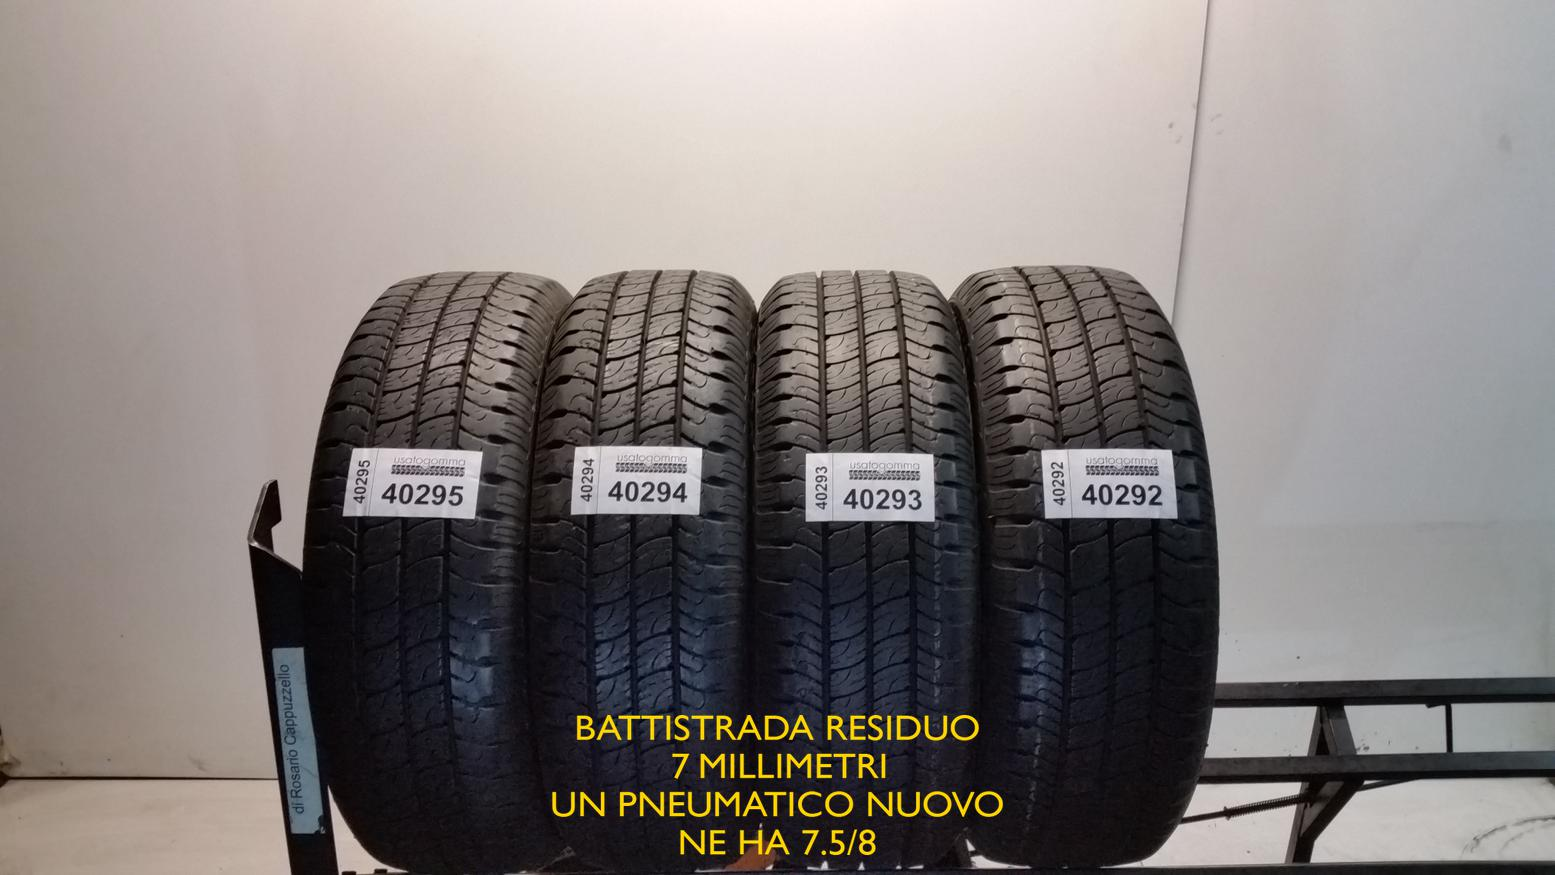 Goodyear 195/60 R16 99 H  usato gomma 11122